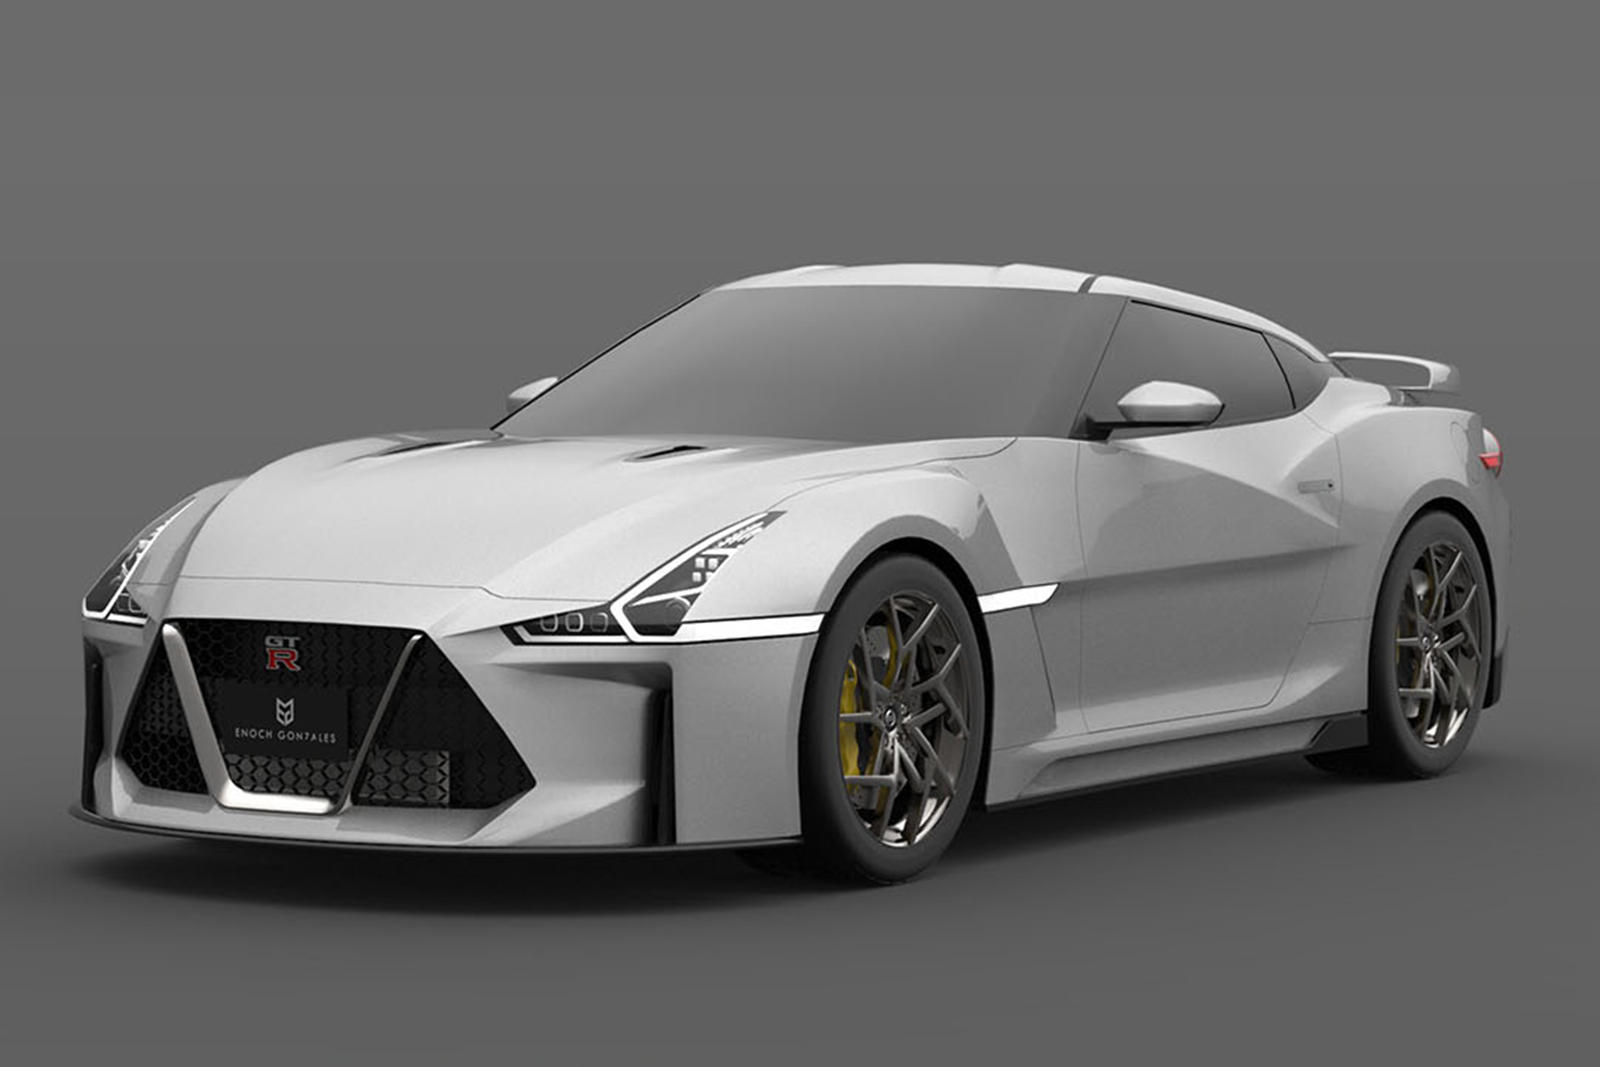 What If The New 2021 Nissan GT-R Looked Like This? | CarBuzz